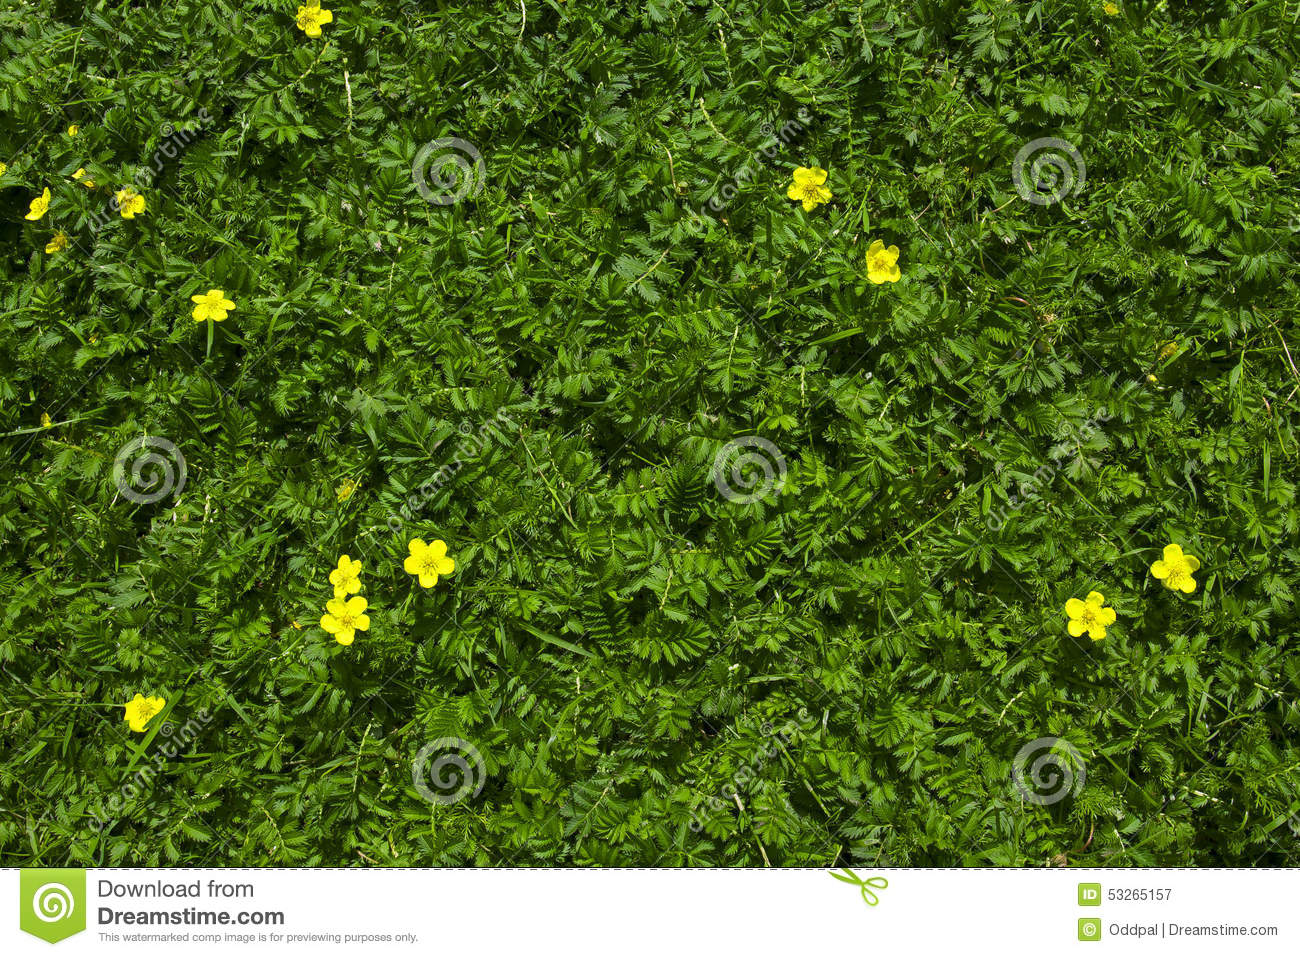 Silverweed green grass with yellow flowers background stock image silverweed green grass with yellow flowers background stock image image of plant ground 53265157 mightylinksfo